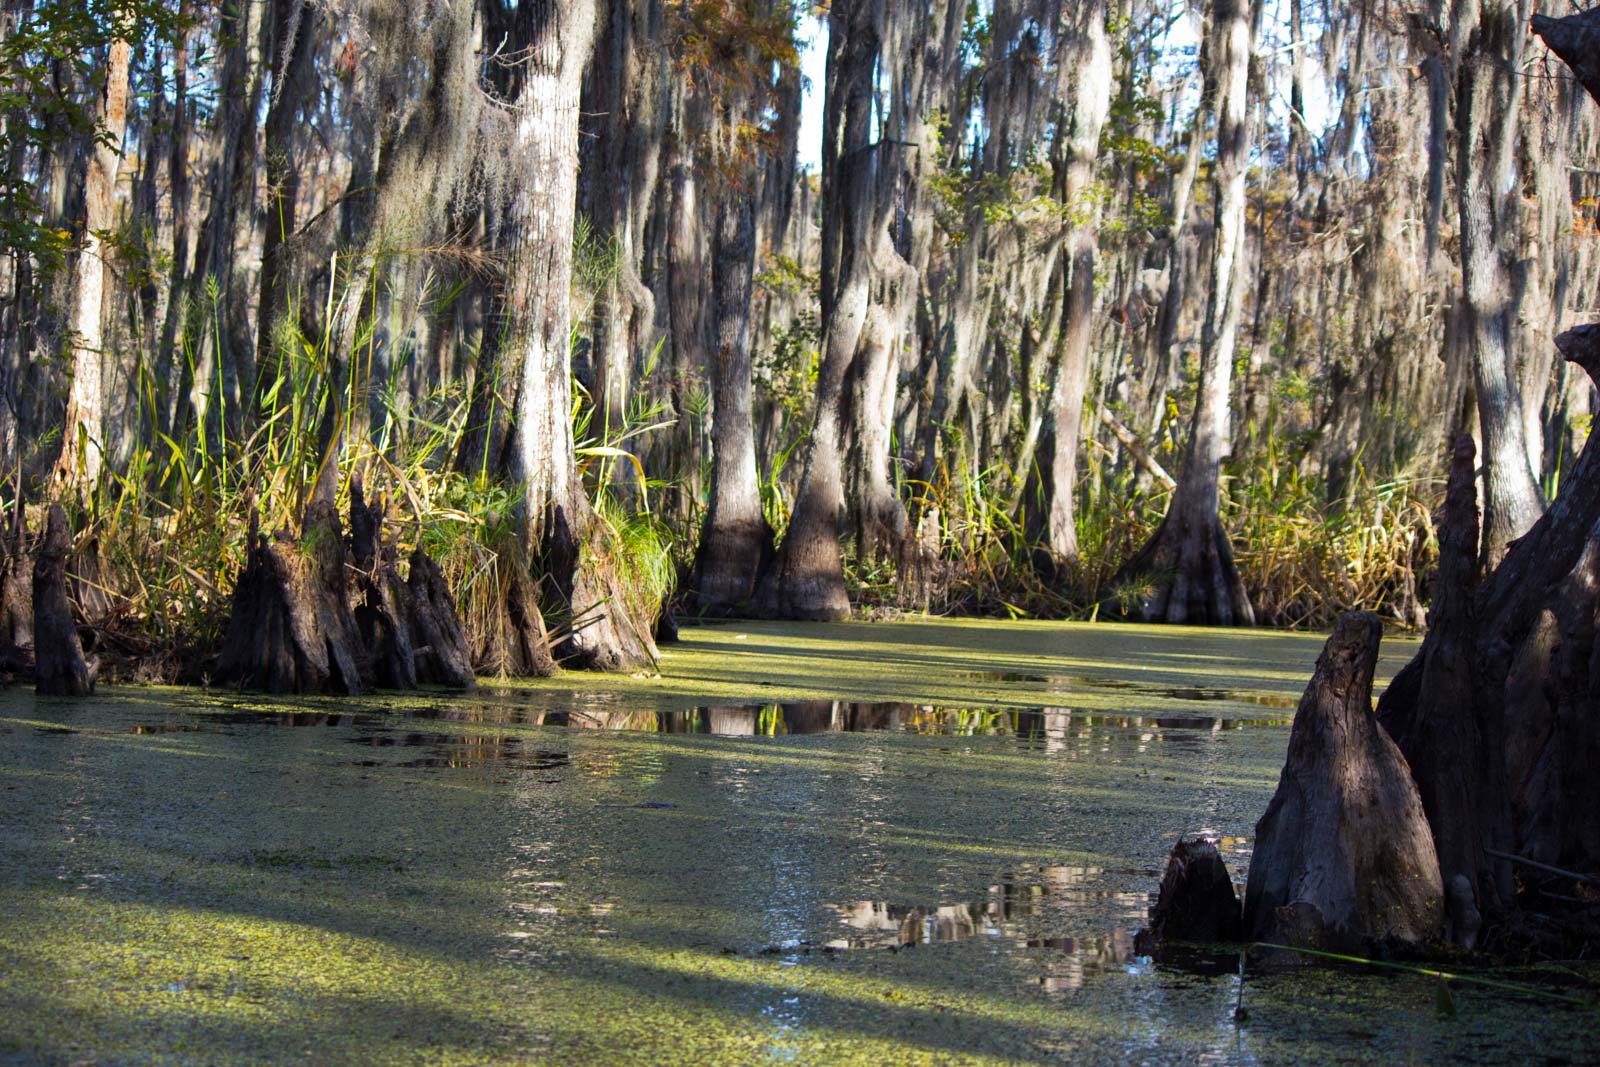 New Orleans Swamp Tour, Louisiana, USA